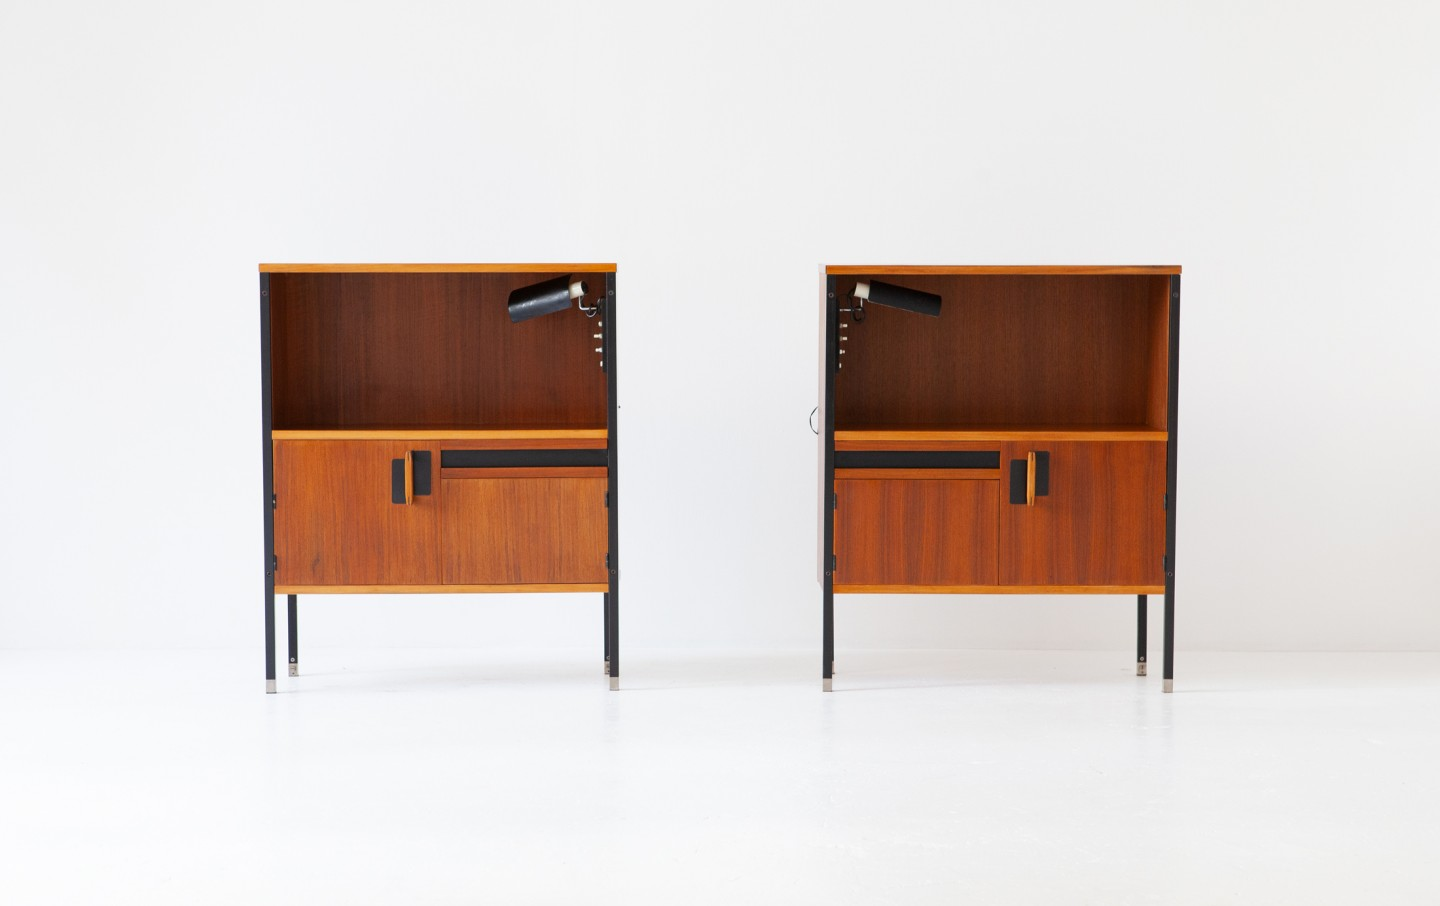 Pair of Nighstands by Ico Parisi for MIM Roma with Gino Sarfatti Lamps cod. Bedside tables 76